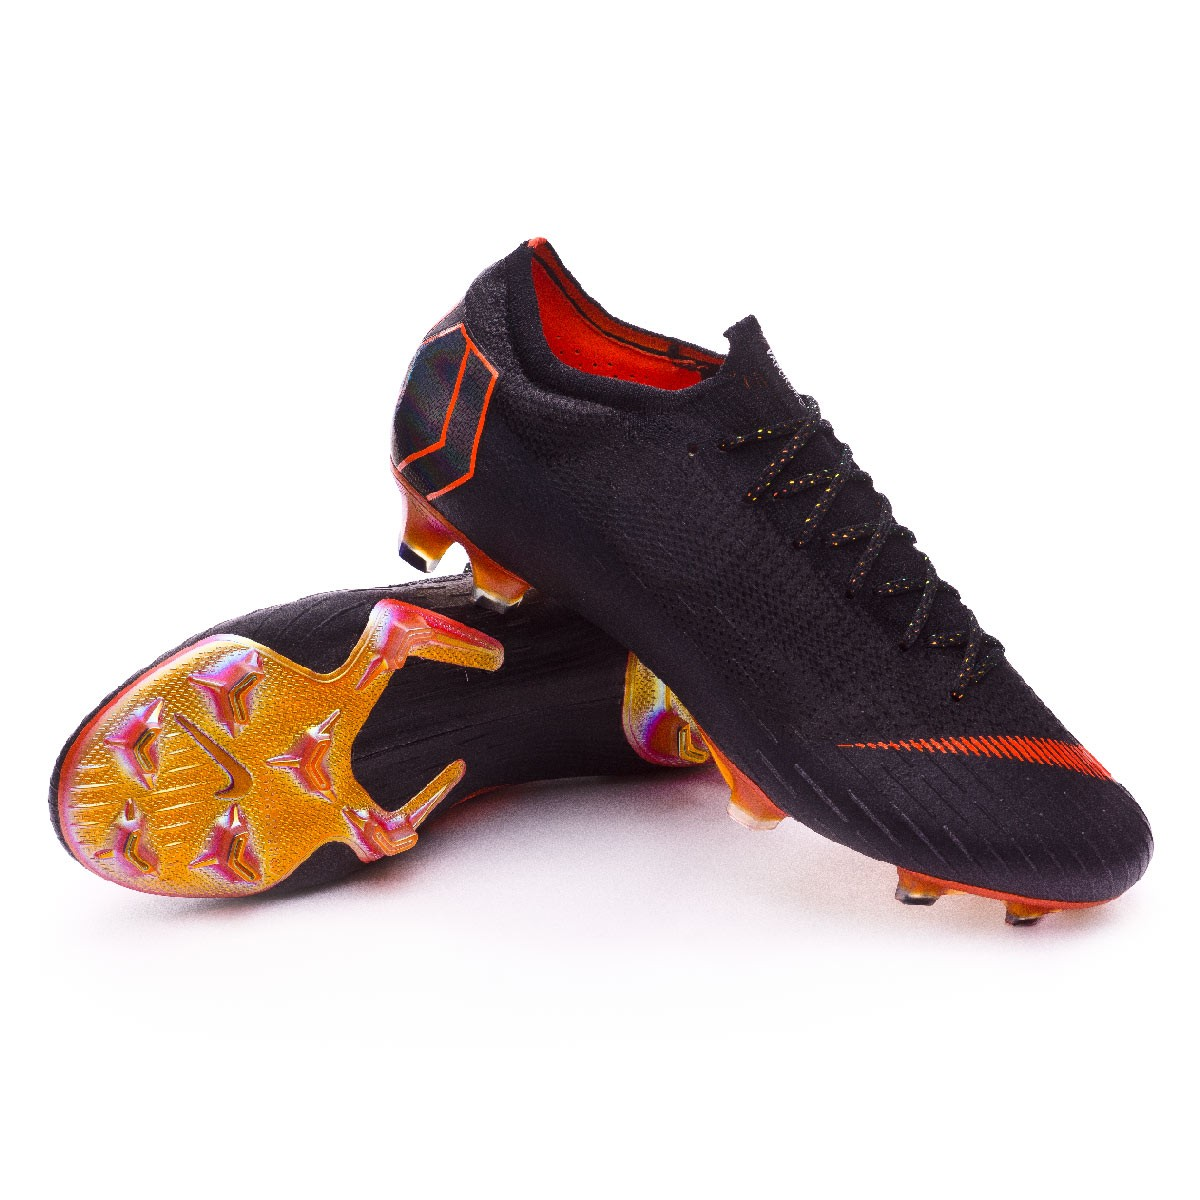 ead8dff9ab0 Nike Mercurial Vapor XII Elite FG Football Boots. Black-Total orange-White  ...